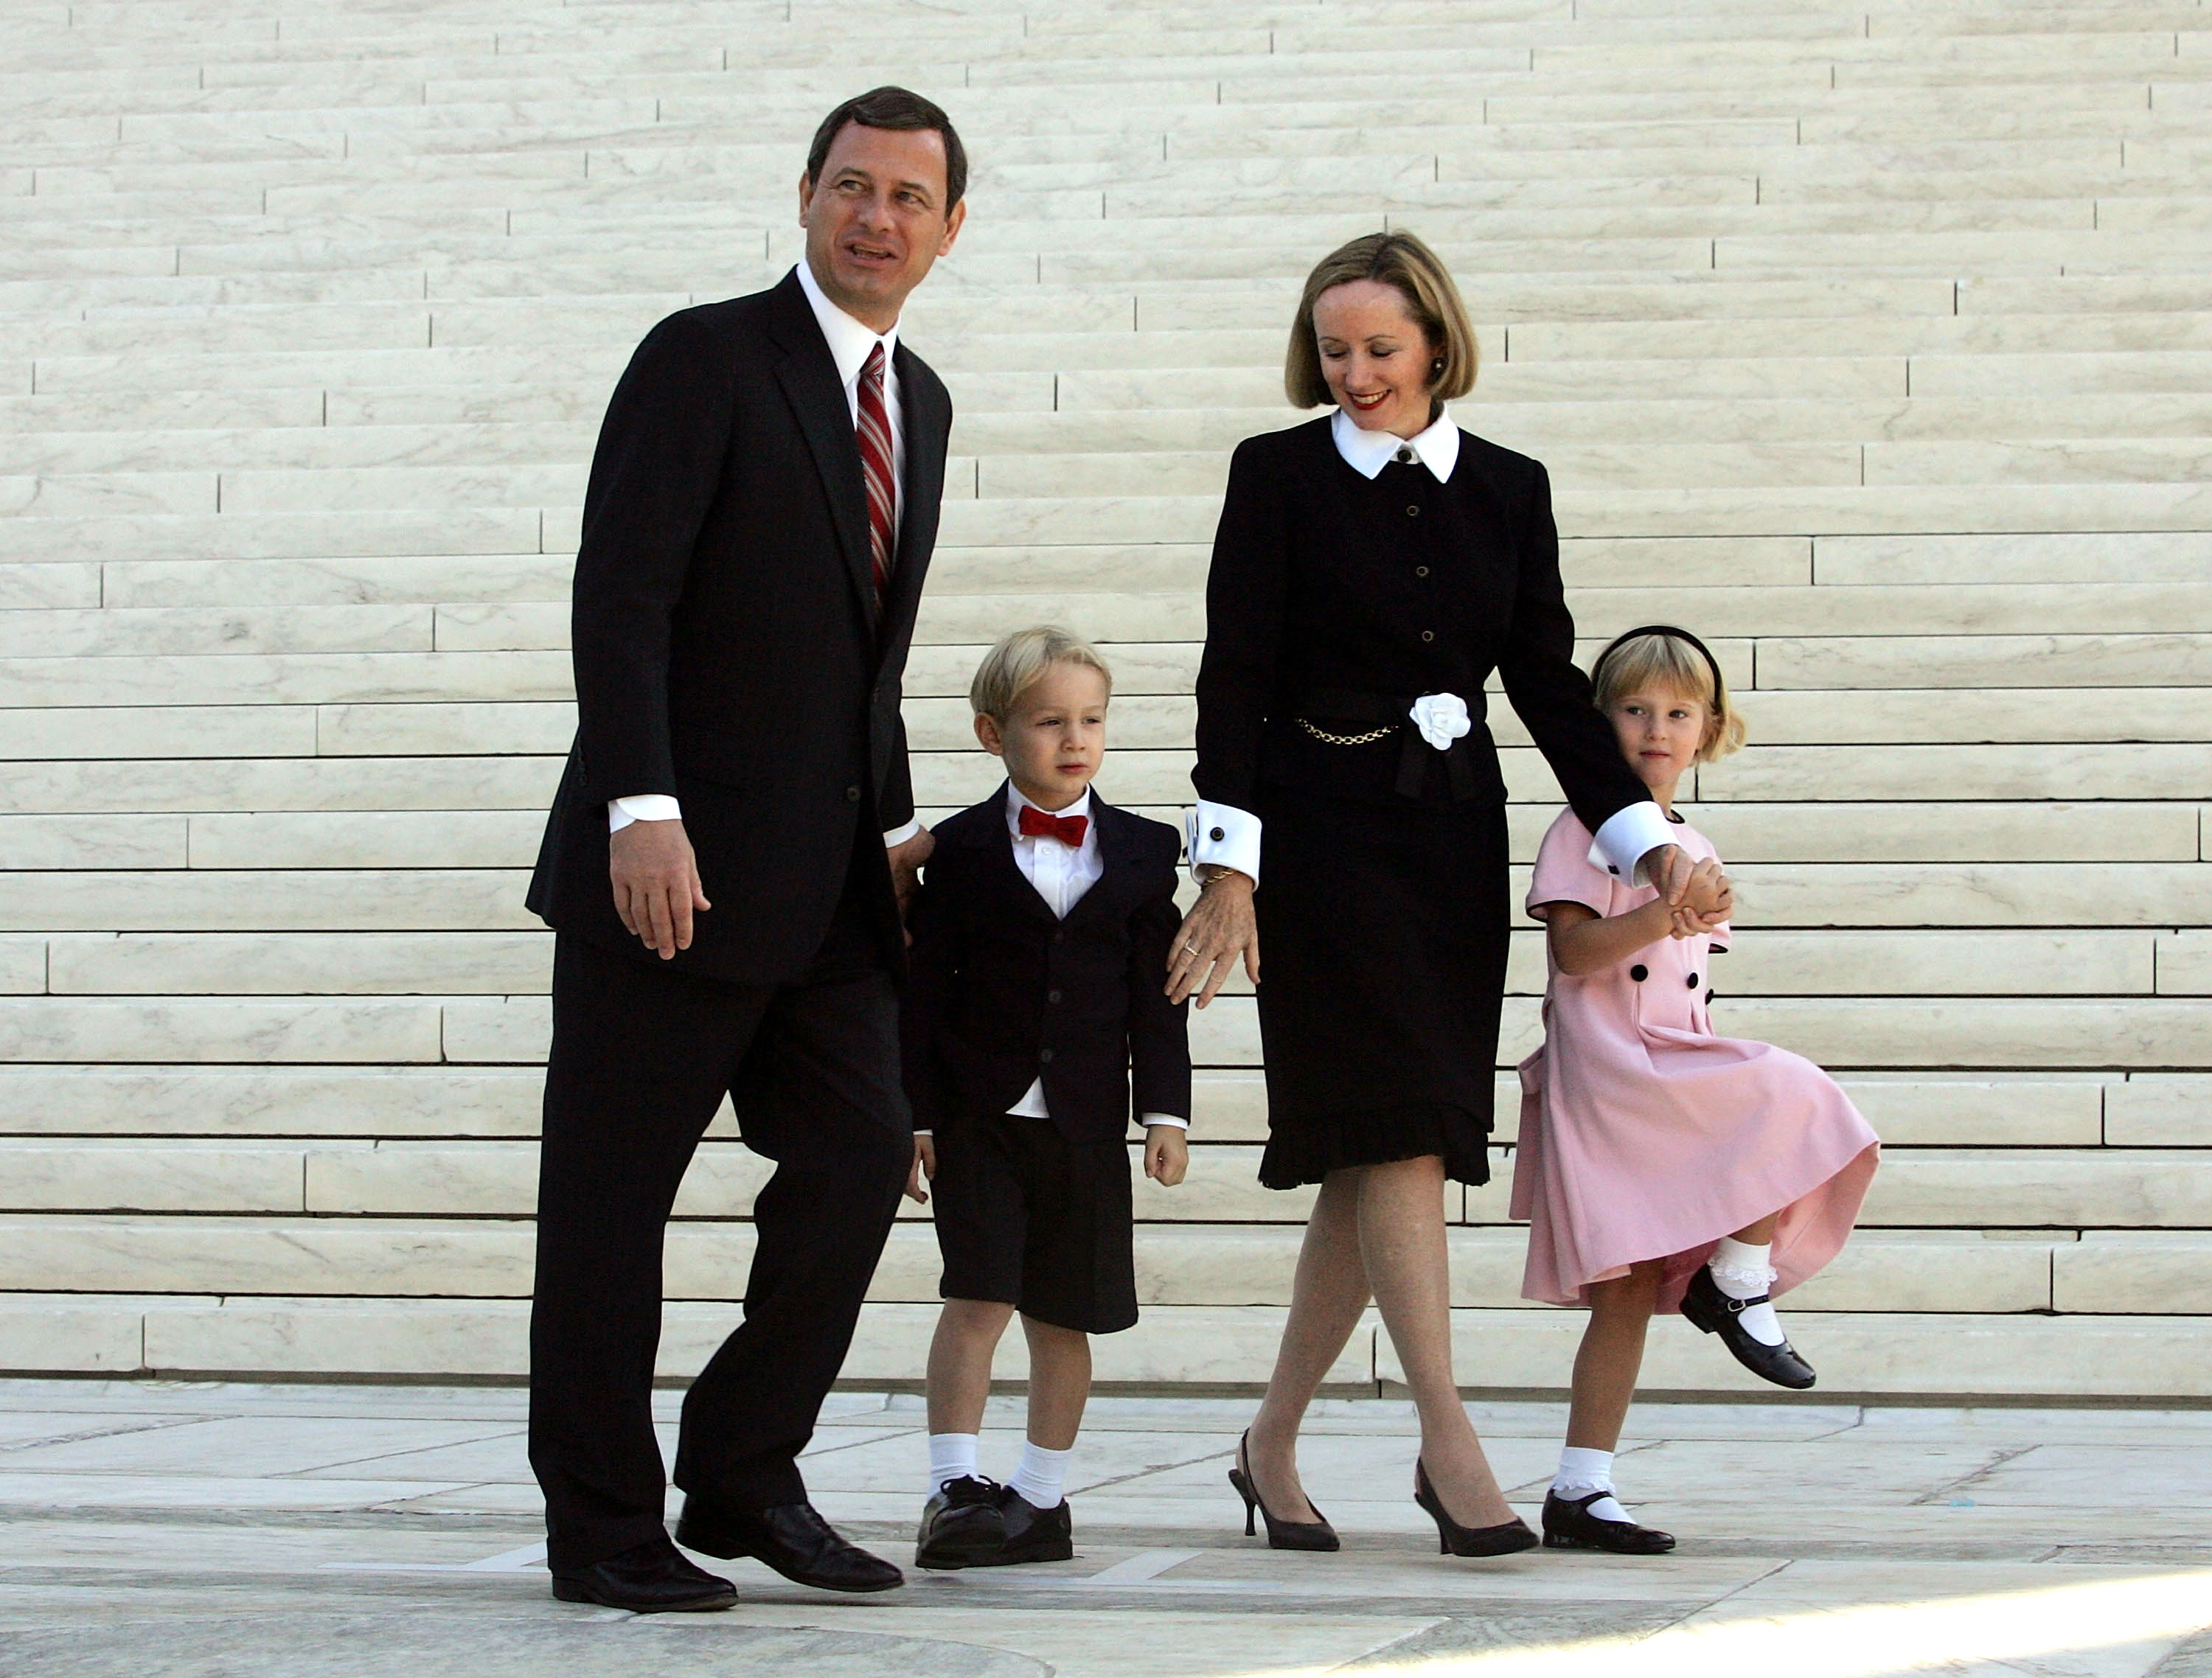 Chief Justice John Roberts walks with his wife Jane Roberts and their children Jack Roberts and Josie Roberts at the Supreme Court after he took the Supreme Court bench for the first time October 3, 2005 in Washington, DC. Roberts replaced William H. Rehnquist as the new chief Justice. (Photo by Joe Raedle/Getty Images)